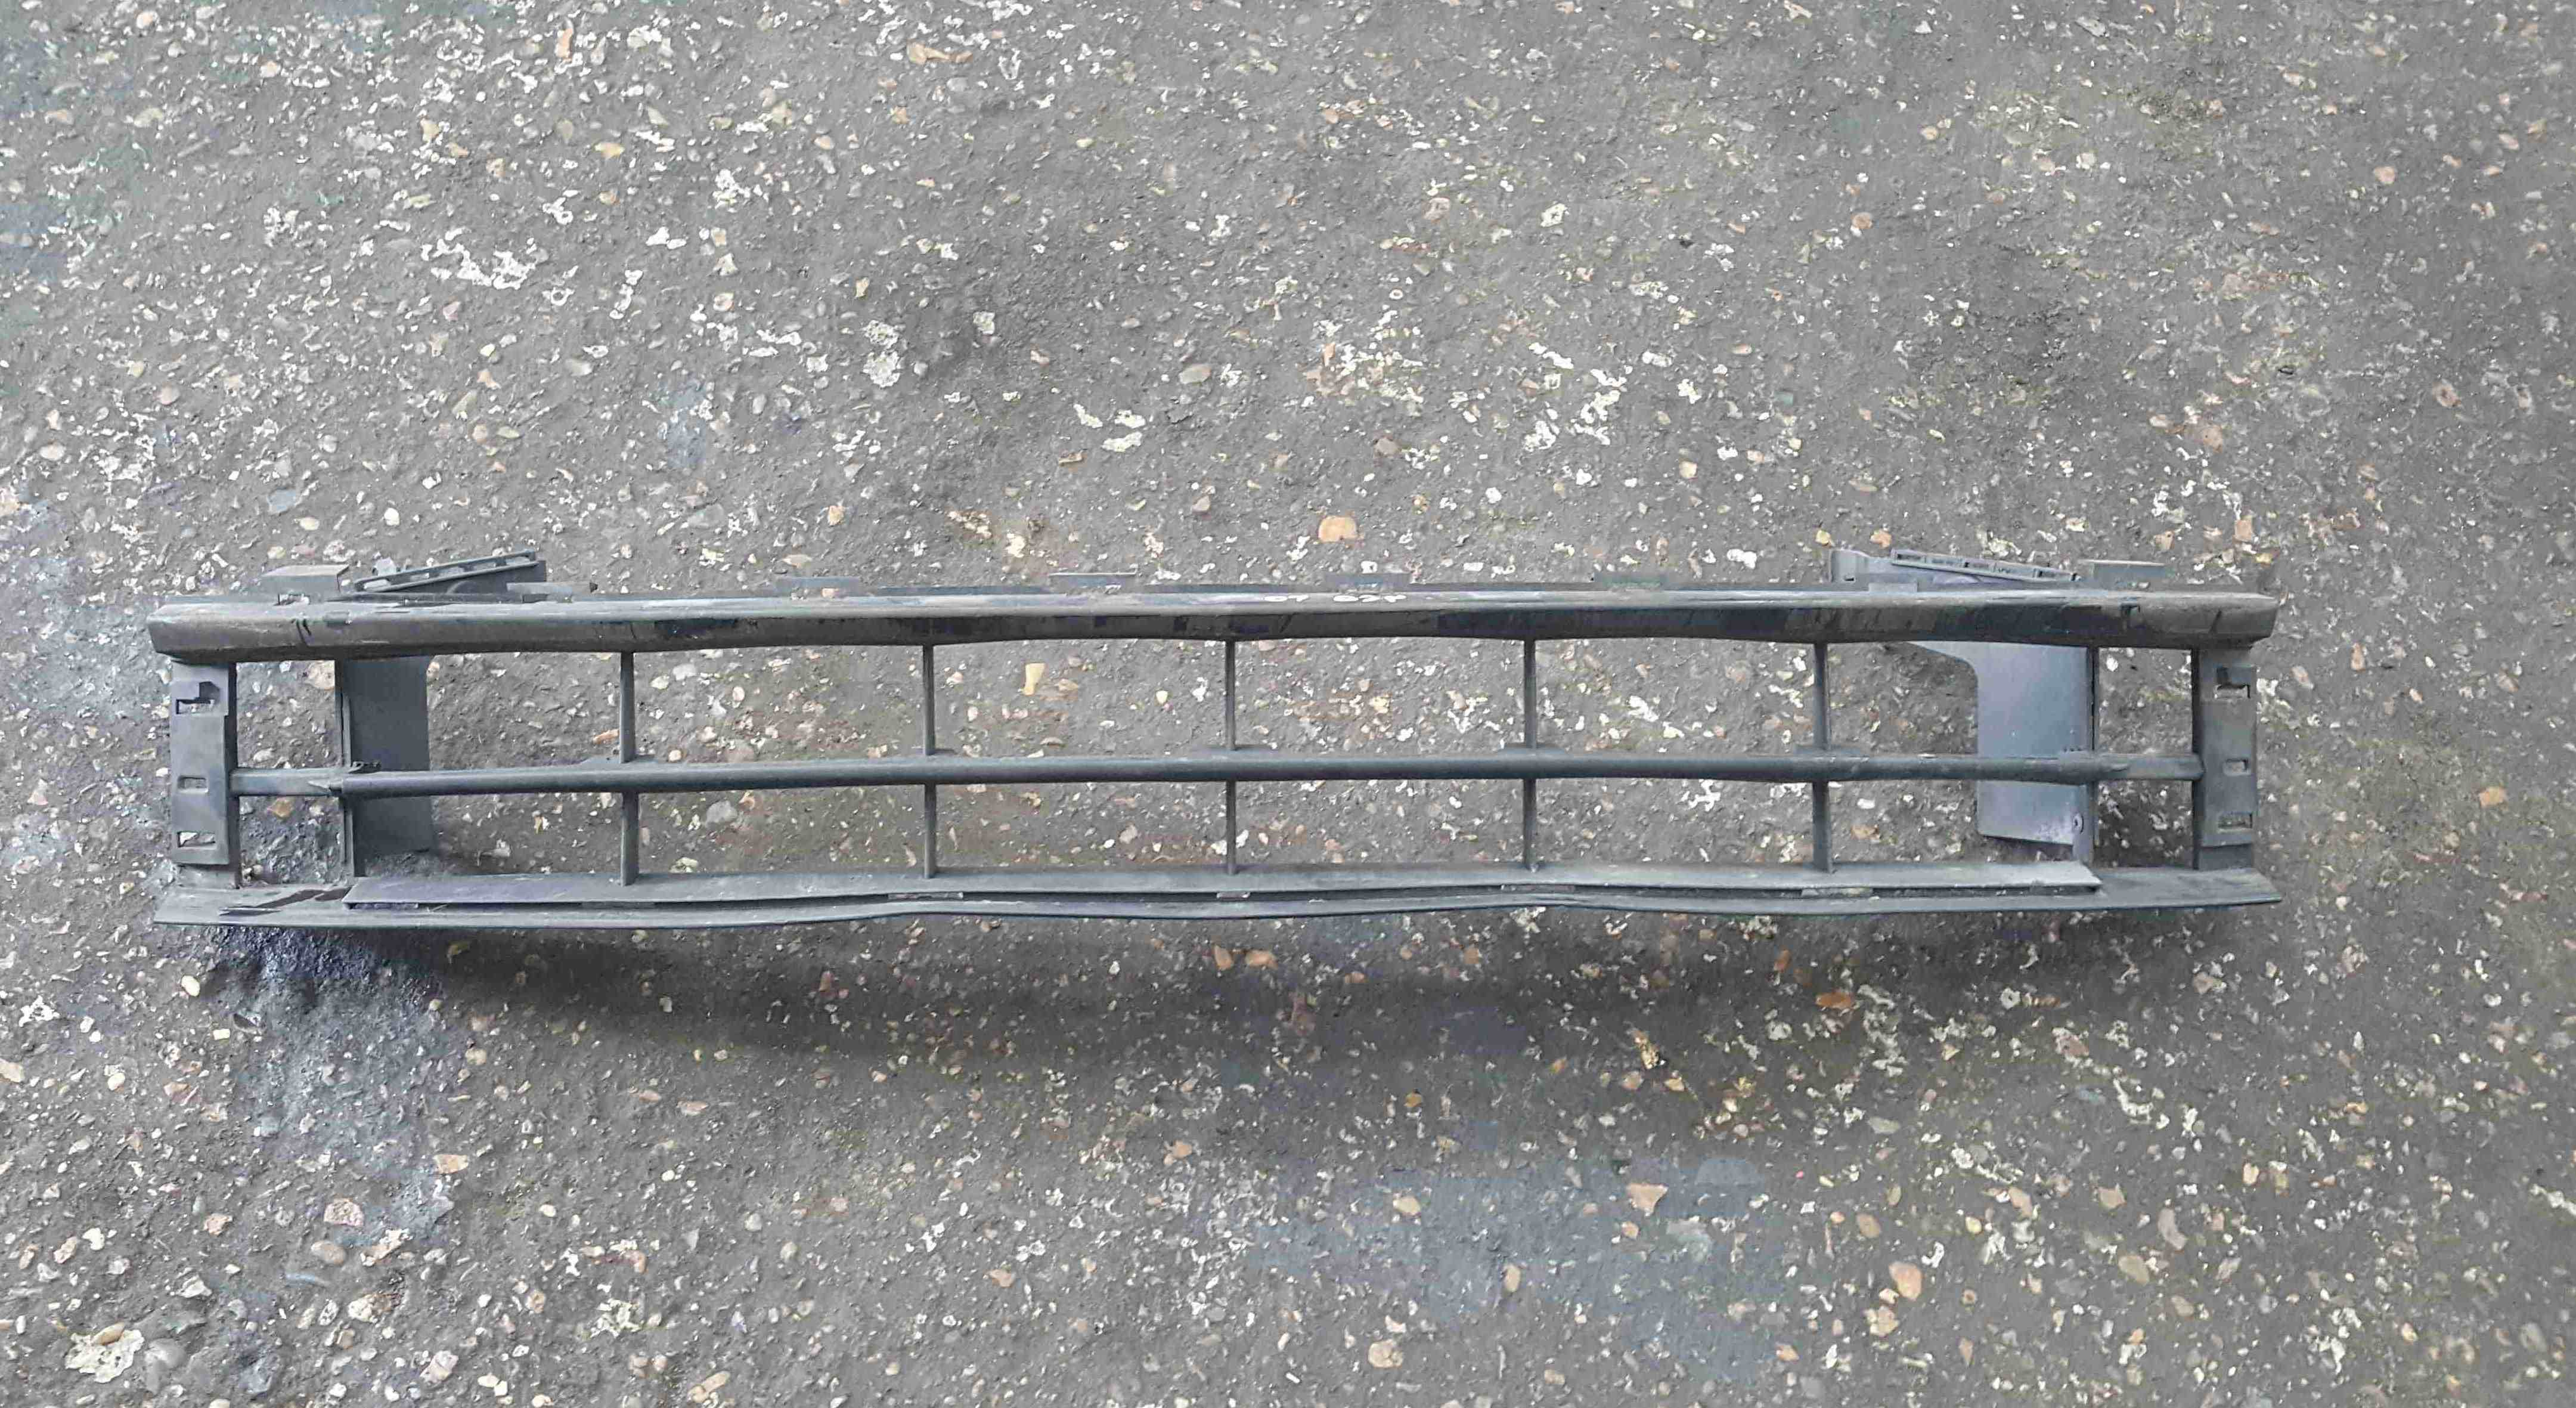 Renault Espace 2003-2013 Front Bumper Gill Grille Insert